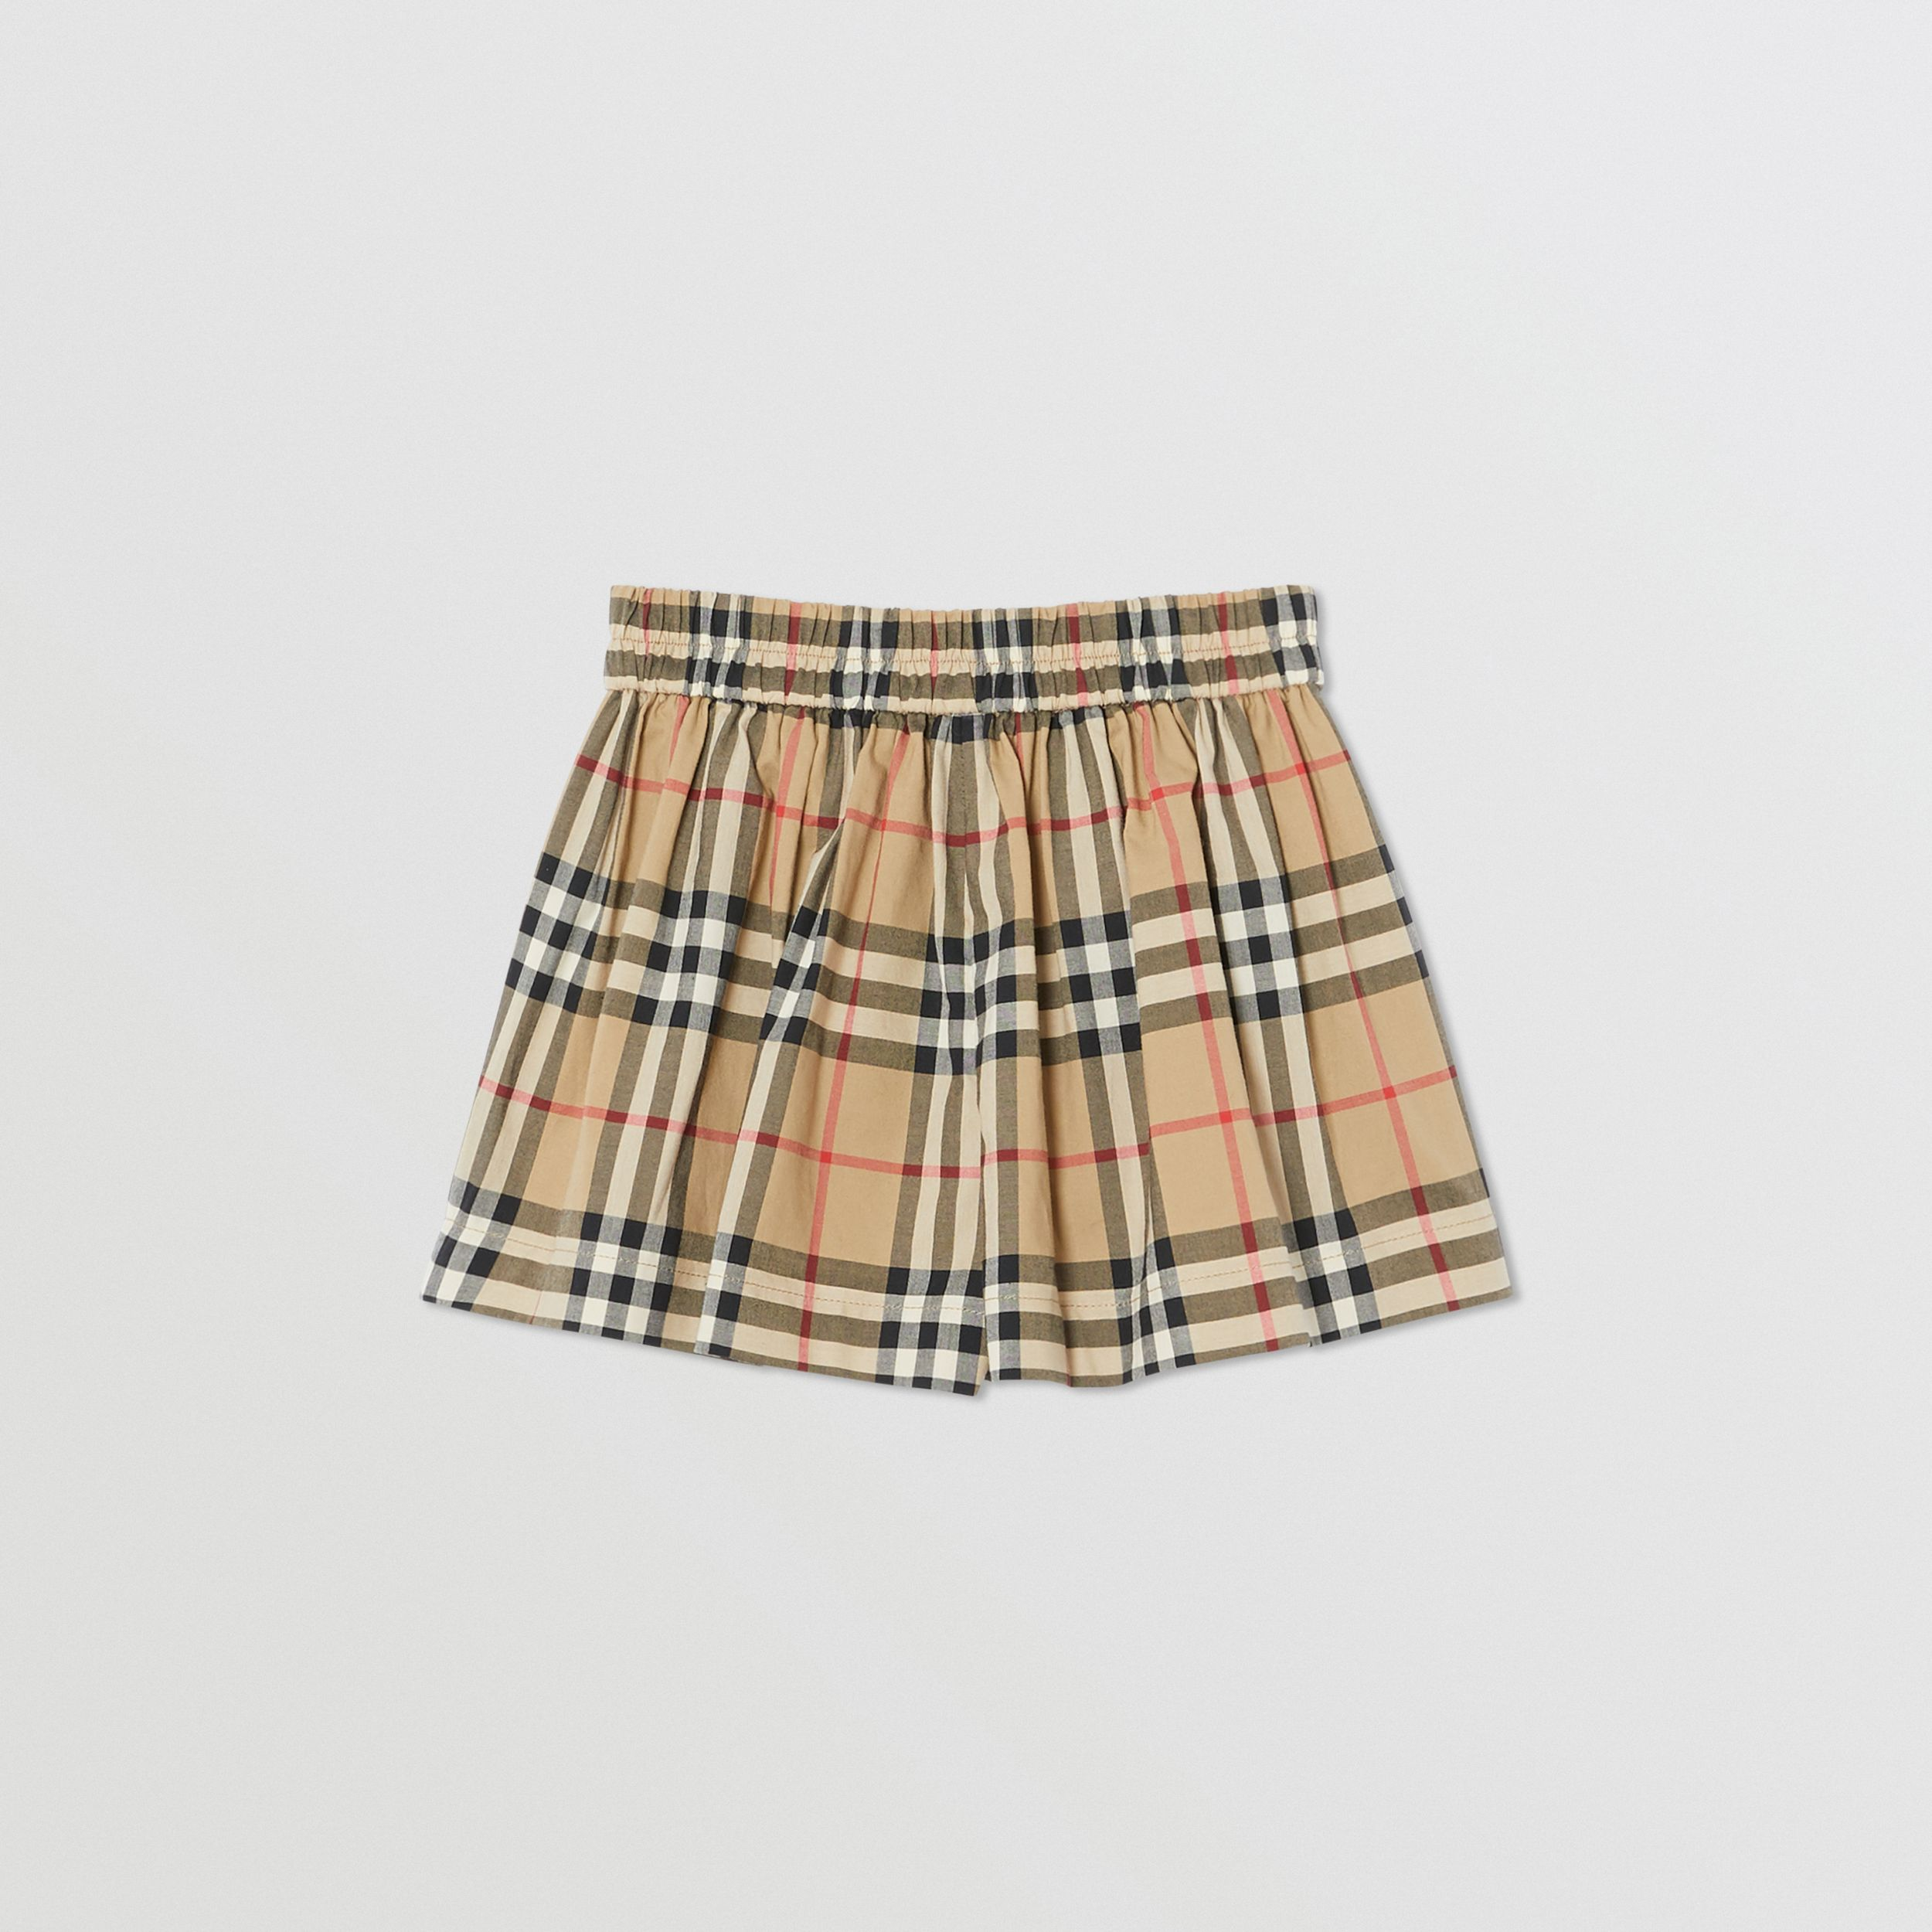 Vintage Check Gathered Cotton Shorts in Archive Beige | Burberry - 4